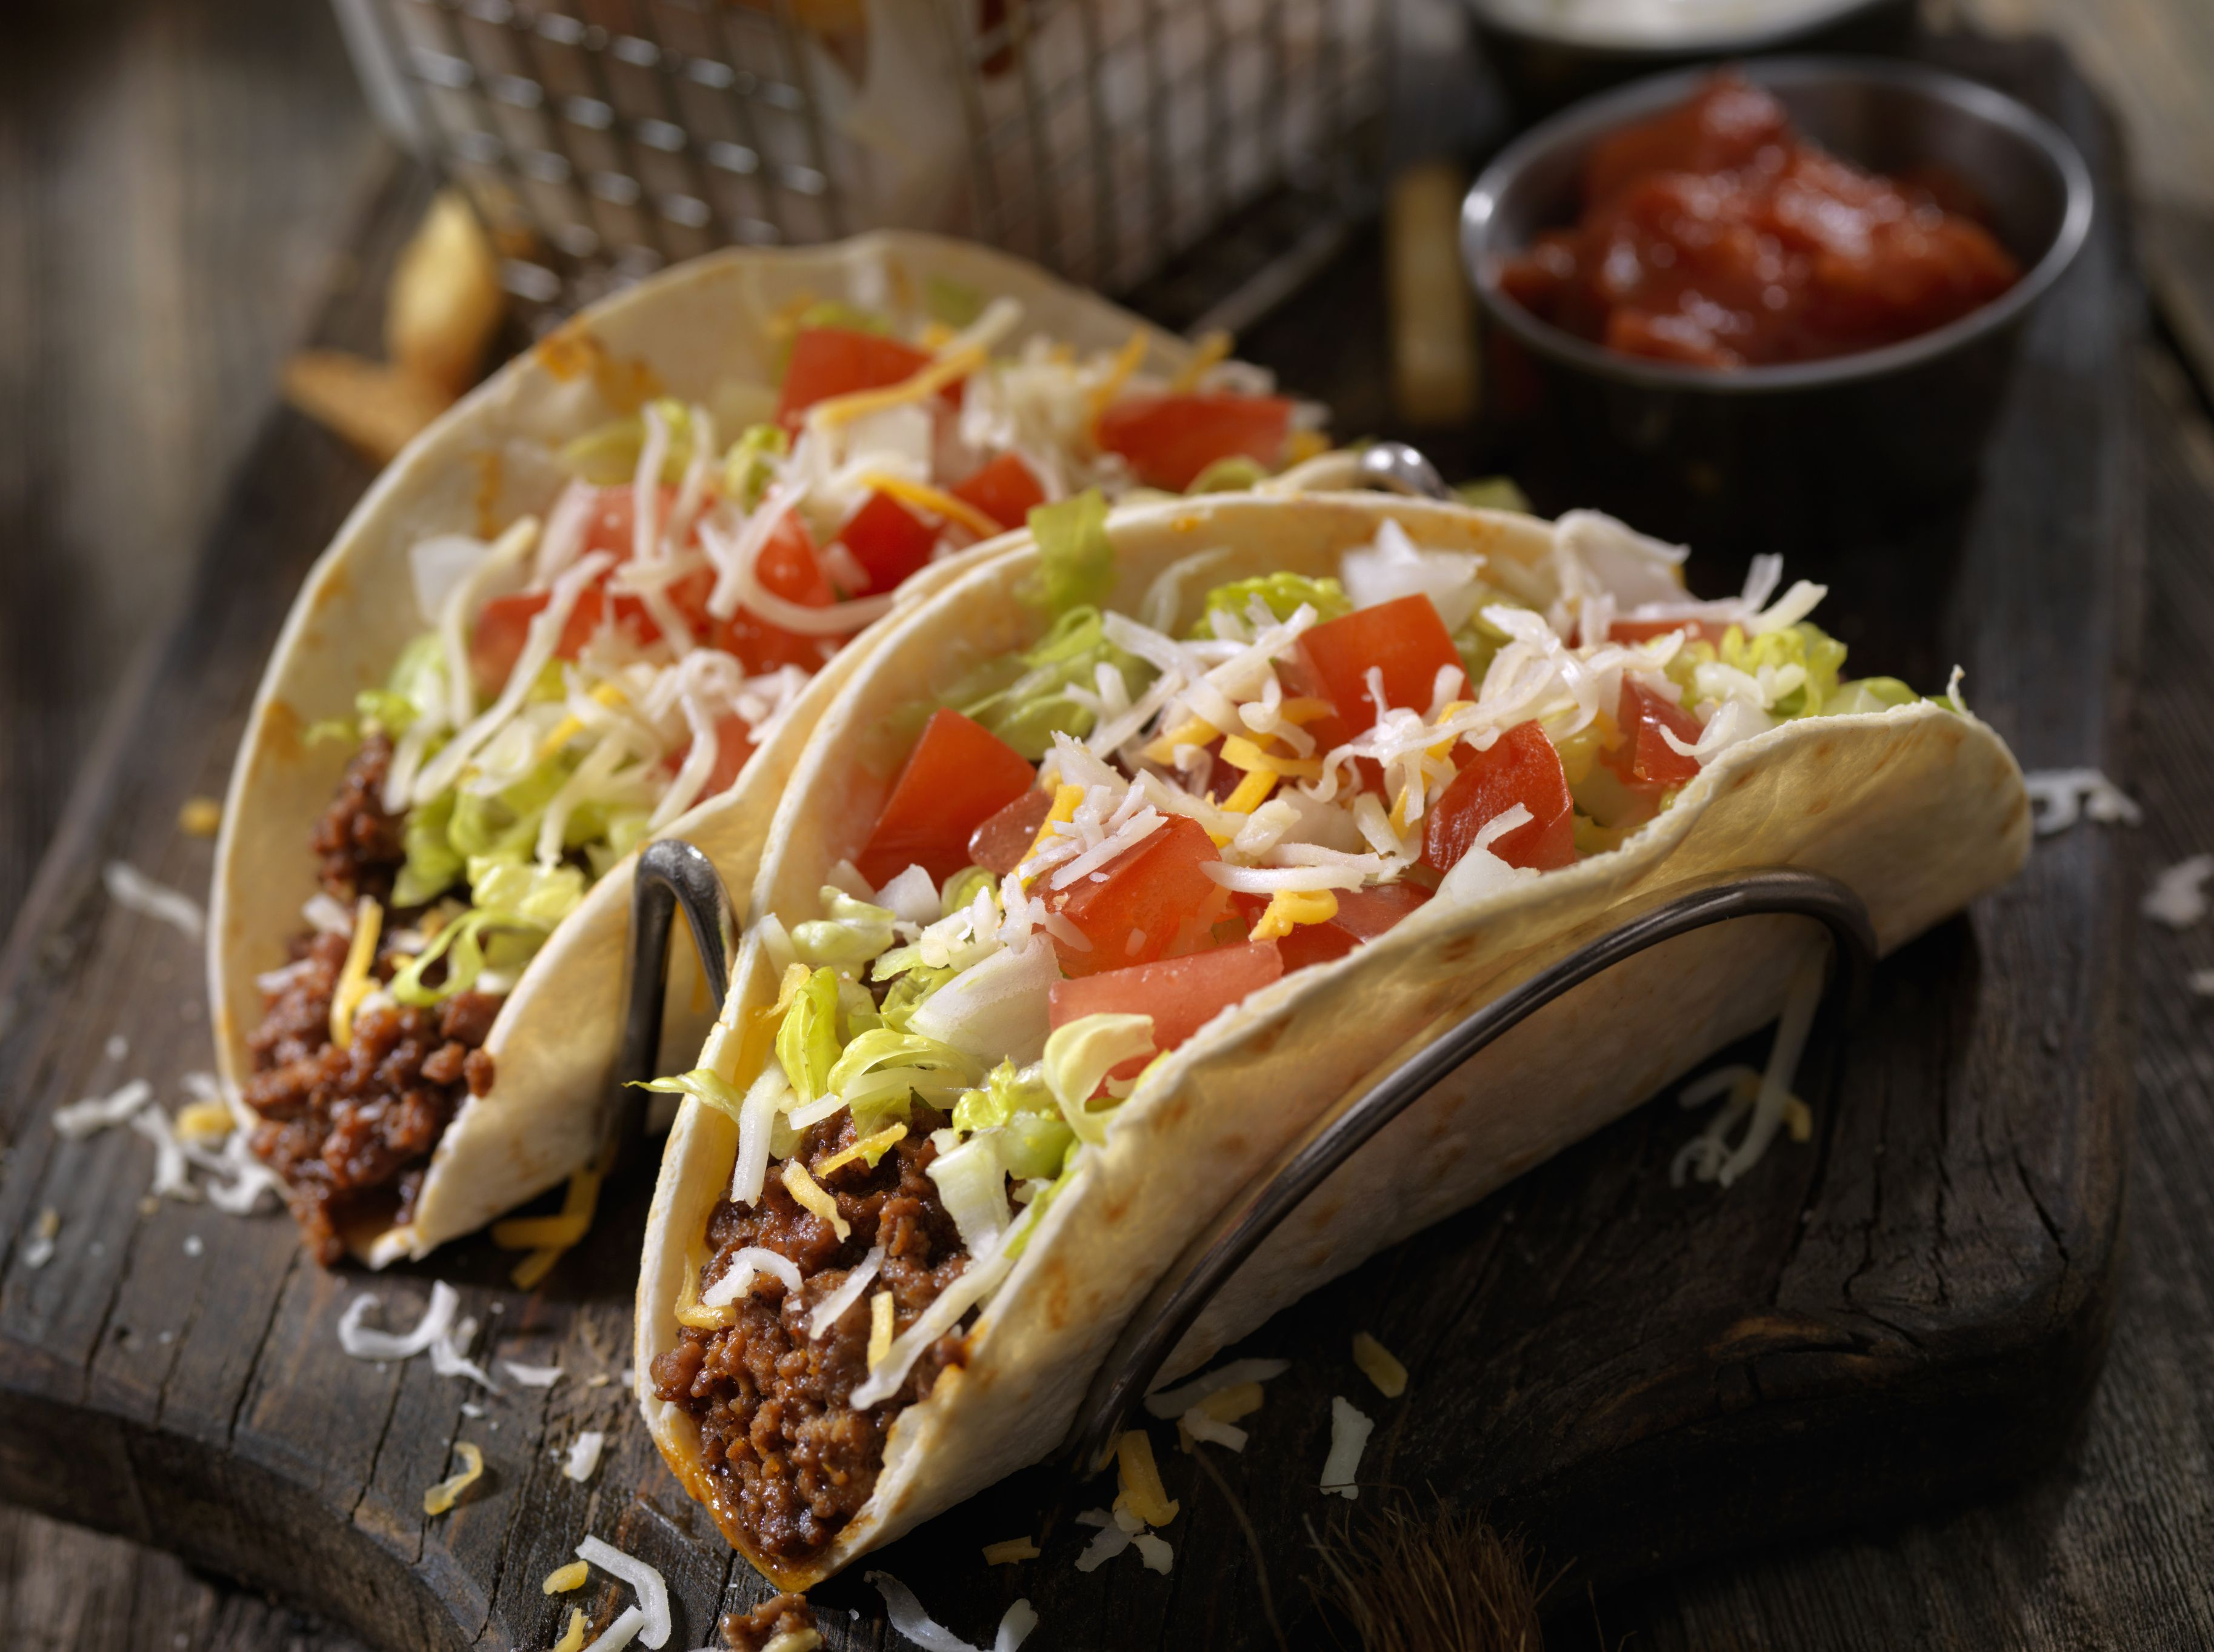 483644ce654 National Taco Day 2018 - Best Free Taco Deals at Taco Bell, Moe's and More